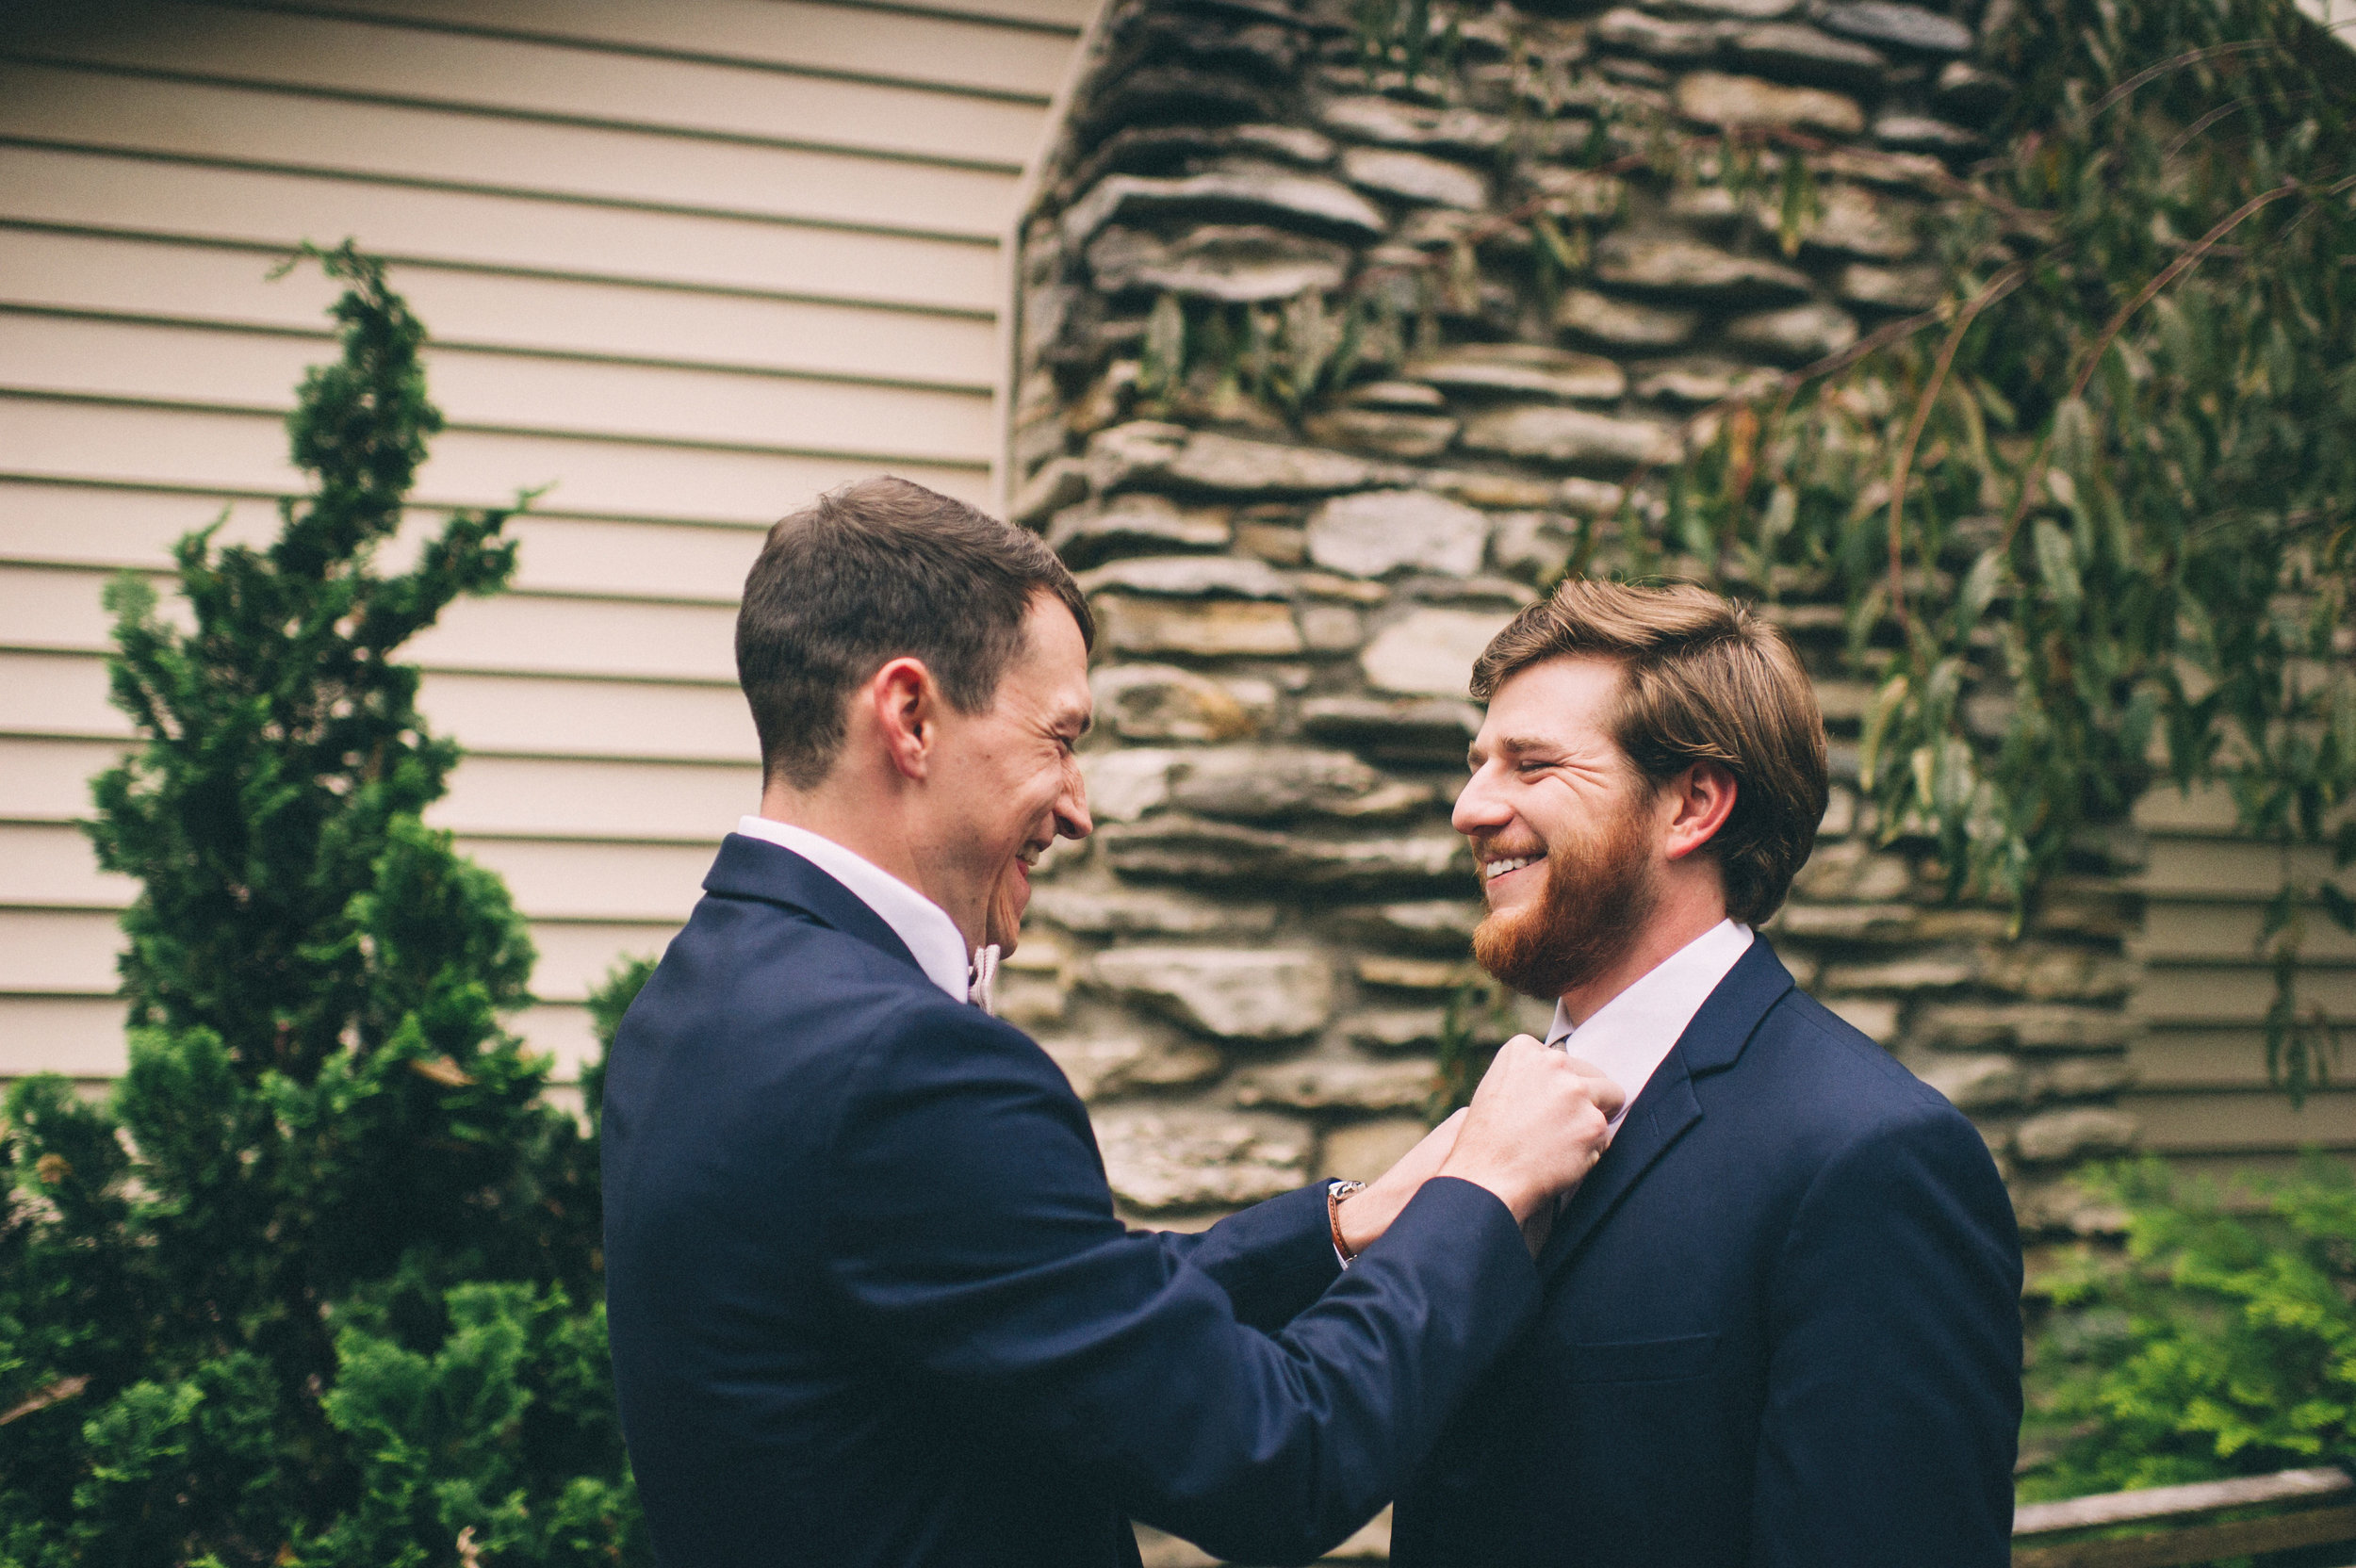 Micaha & Austin // Cozy Autumn Wedding at Springhouse Gardens // Lexington, Kentucky // Wedding Photography // Groom Getting Ready